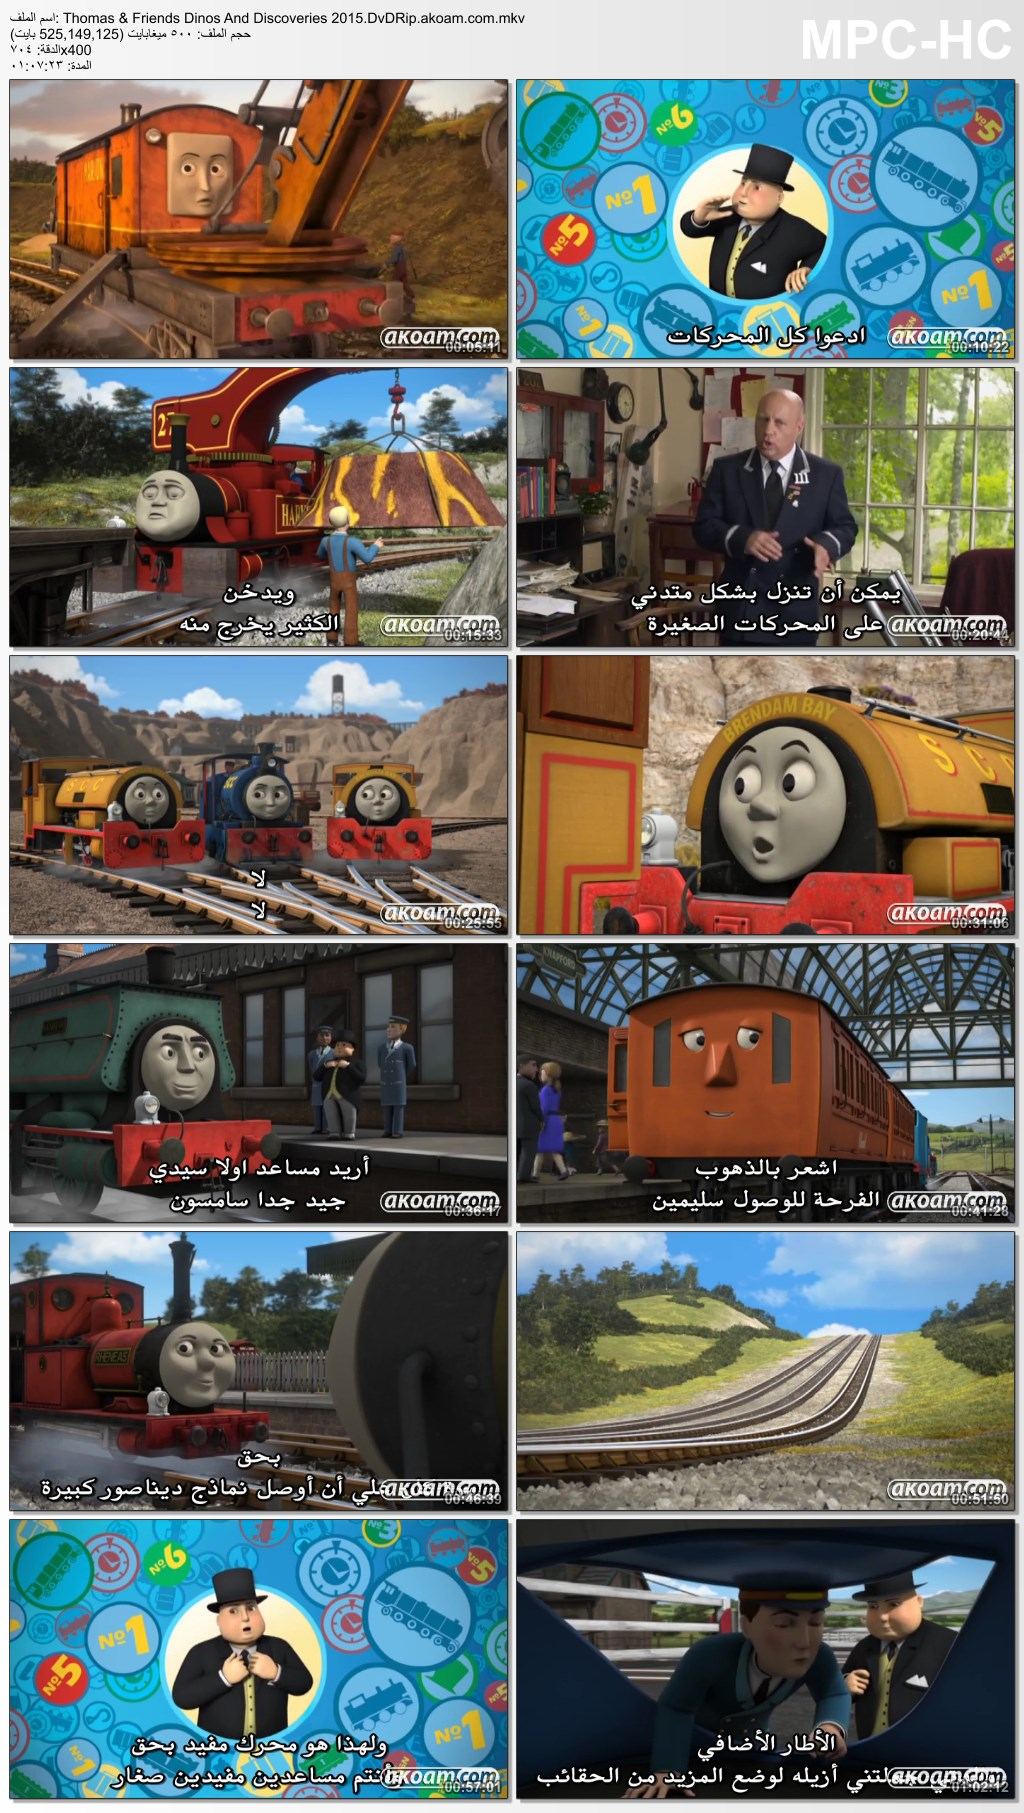 Dinos and Discoveries,Dinos and Discoveries 2015,المغامرات,الانمي,الانيميشن,العائلي,Thomas & Friends: Dinos and Discoveries 2015,Thomas & Friends,Thomas & Friends: Dinos and Discoveries